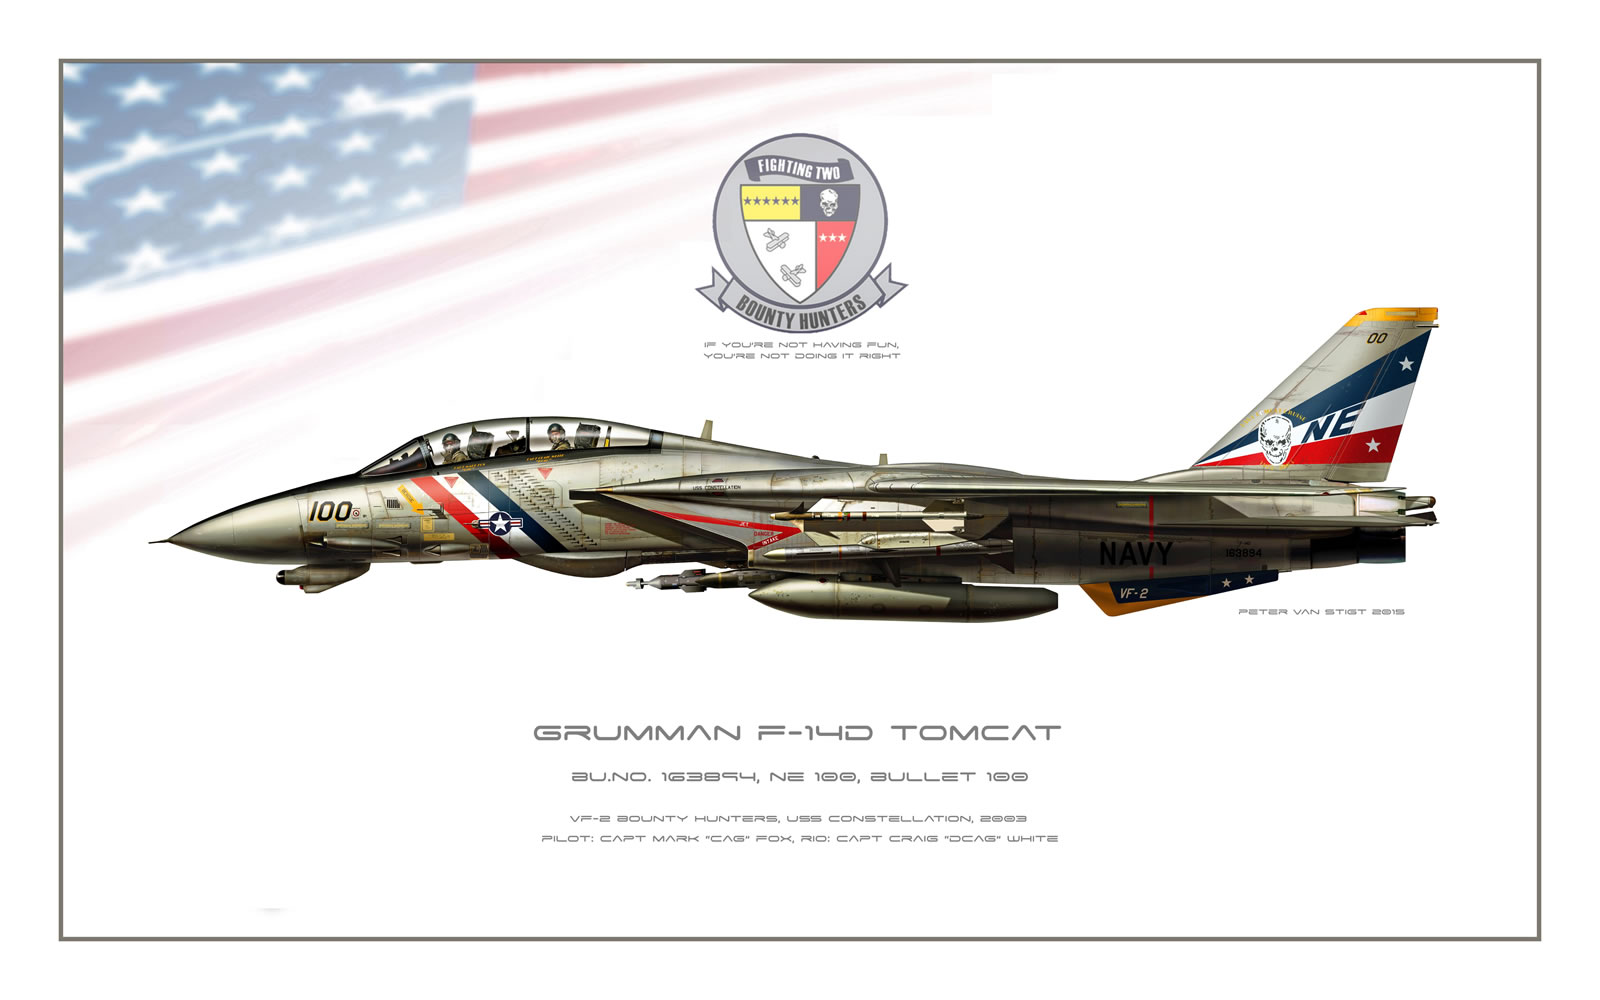 VF-2 Bounty Hunters F-14D Tomcat Profile